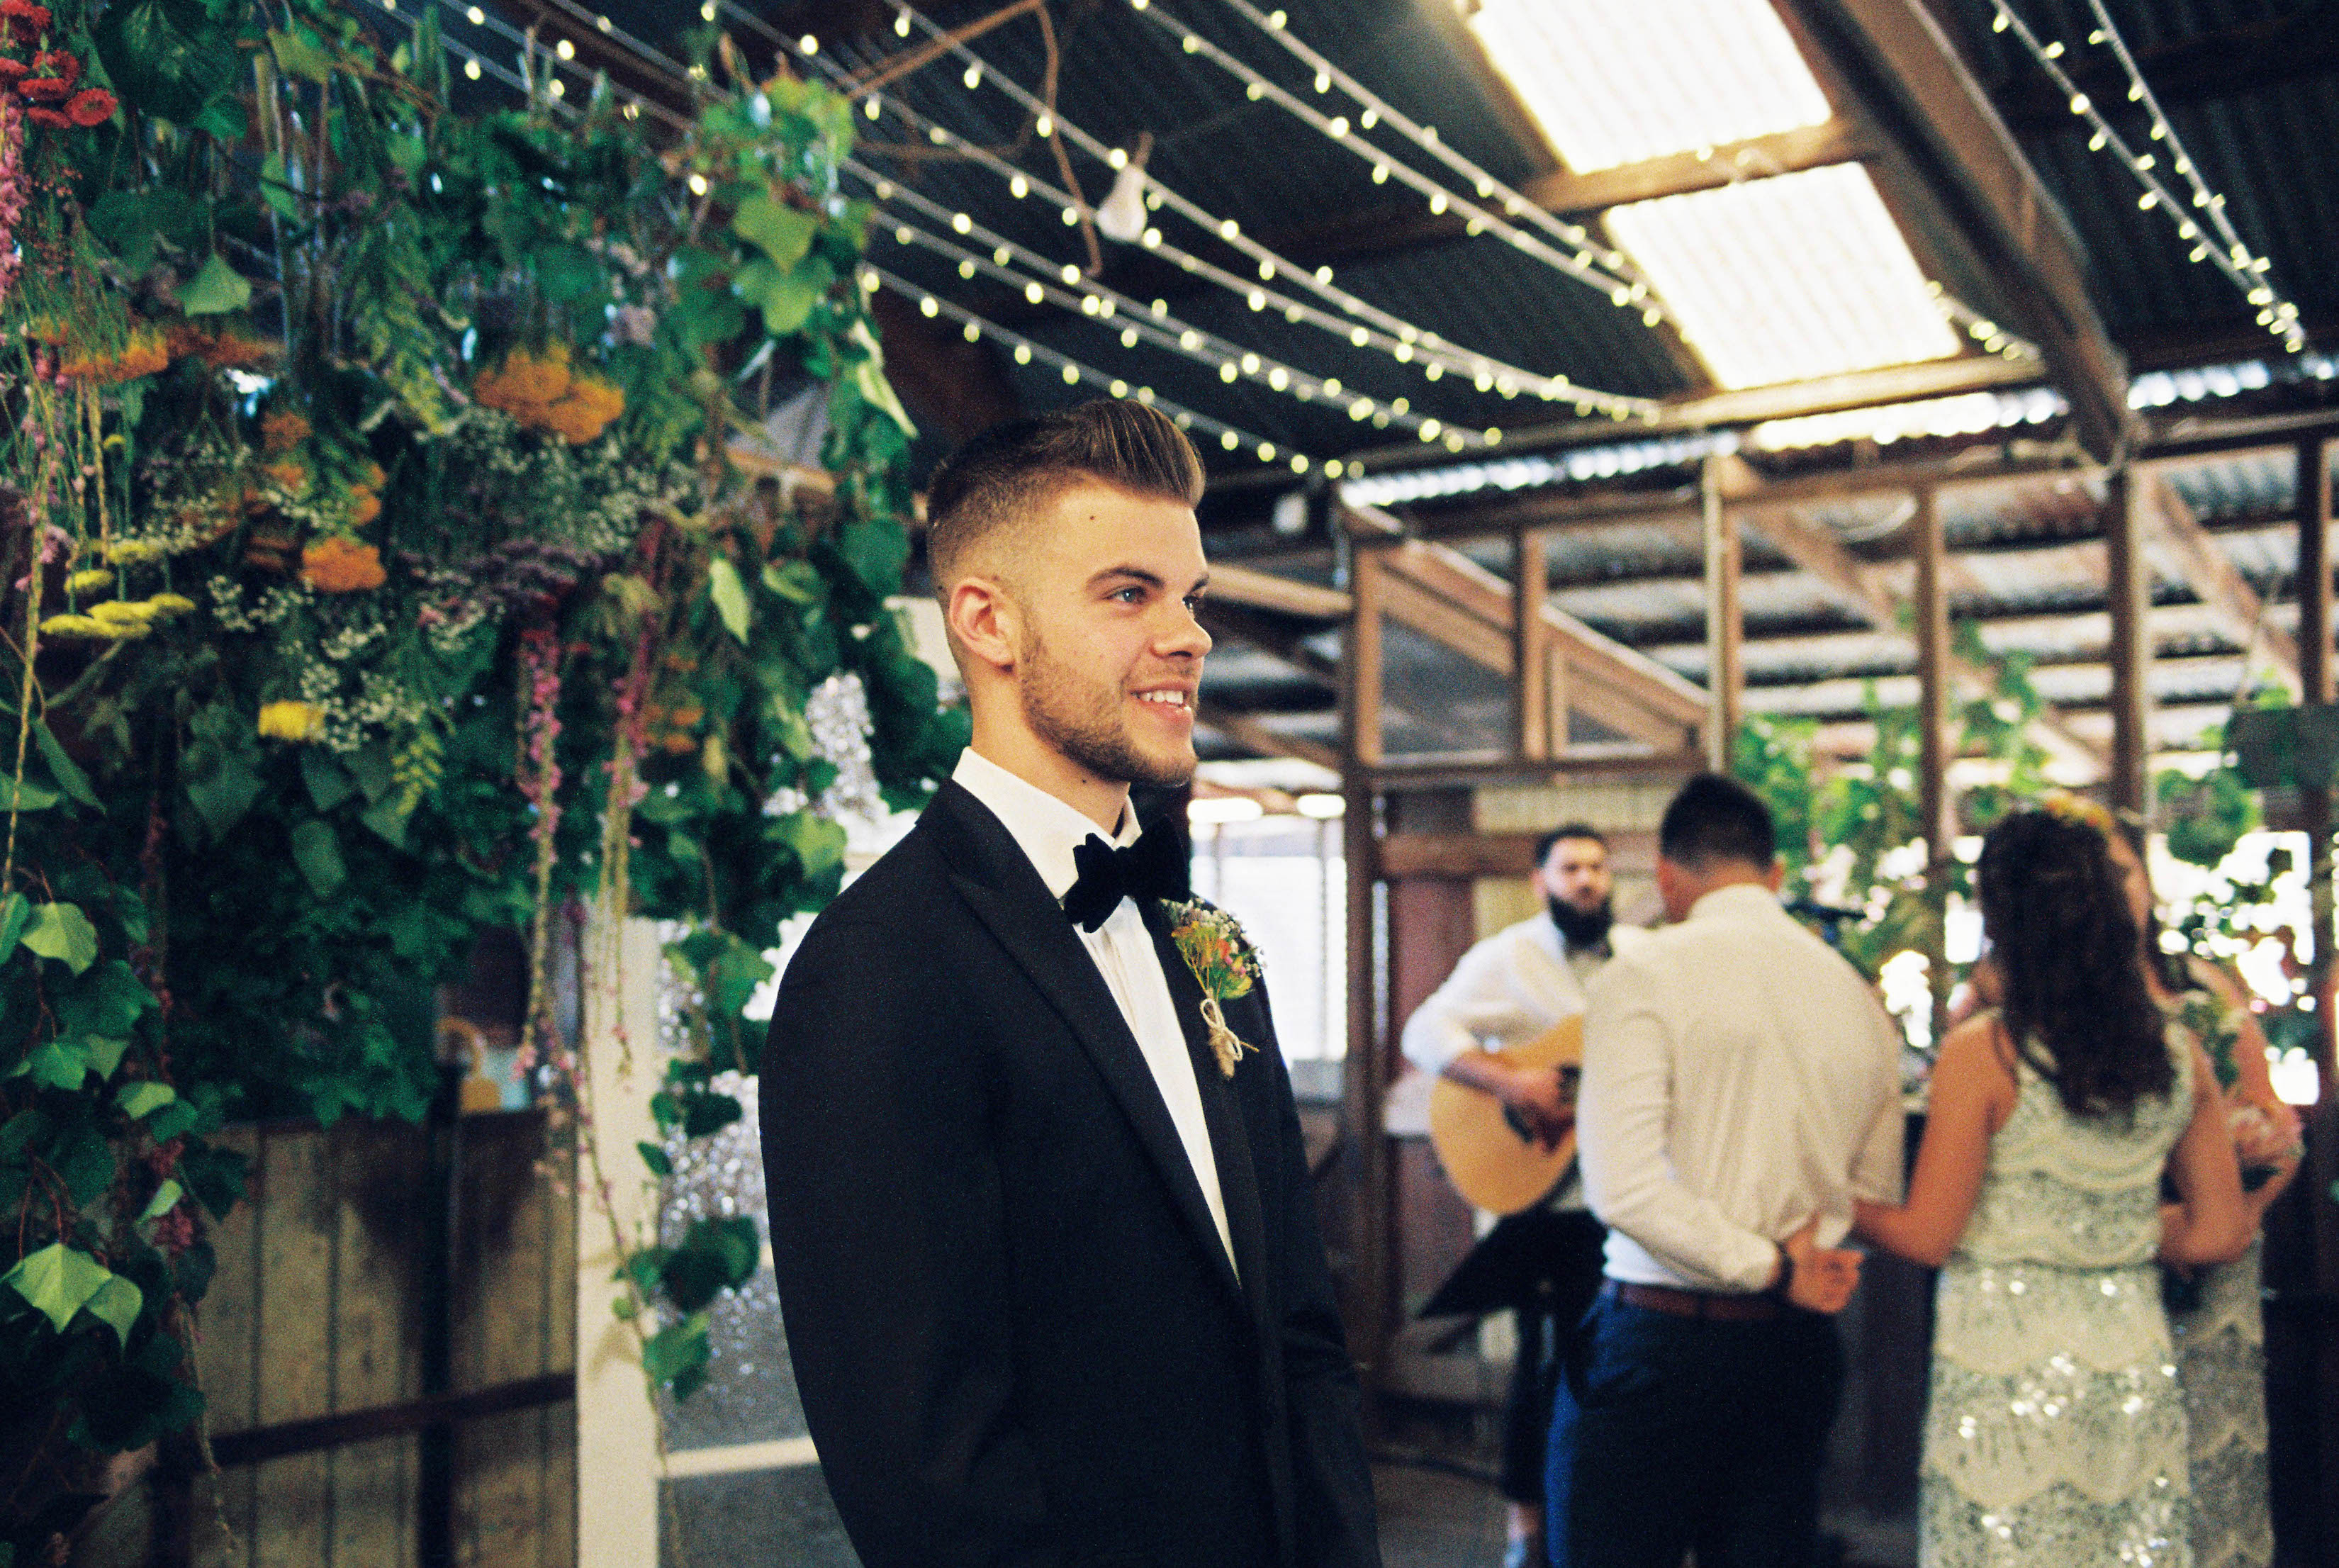 A photo of the groom after seeing his bride for the first time on their South West Wedding Day